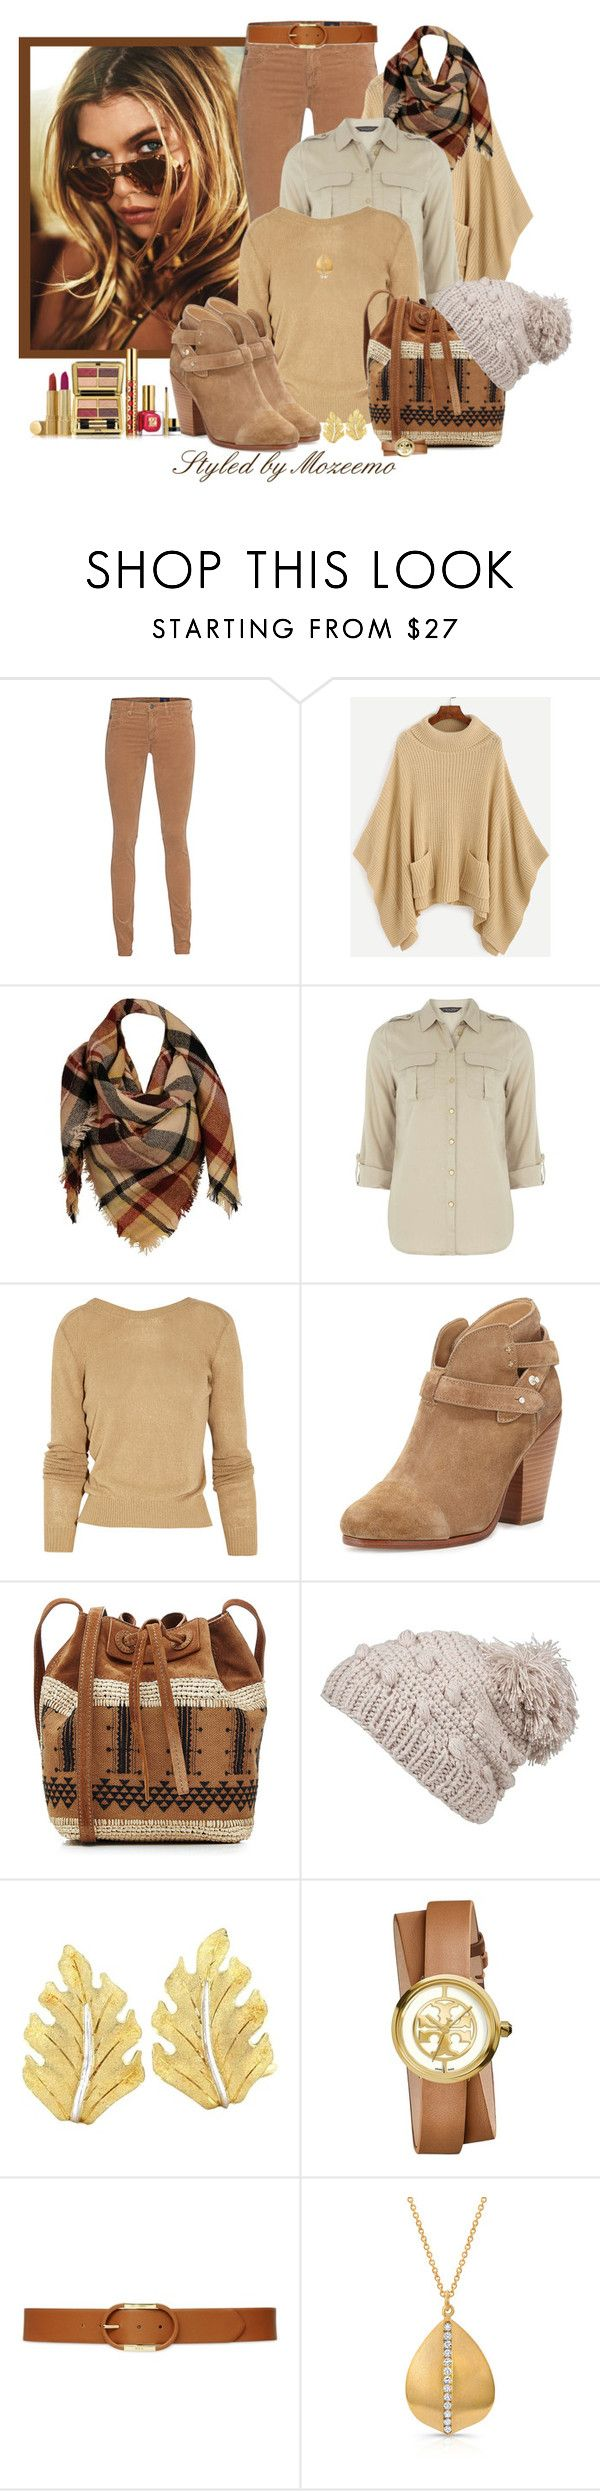 """Autumn Trousers Outfit"" by mozeemo ❤ liked on Polyvore featuring AG Adriano Goldschmied, Estée Lauder, Sylvia Alexander, Dorothy Perkins, 3.1 Phillip Lim, rag & bone, Vanessa Bruno, prAna, Buccellati and Tory Burch"